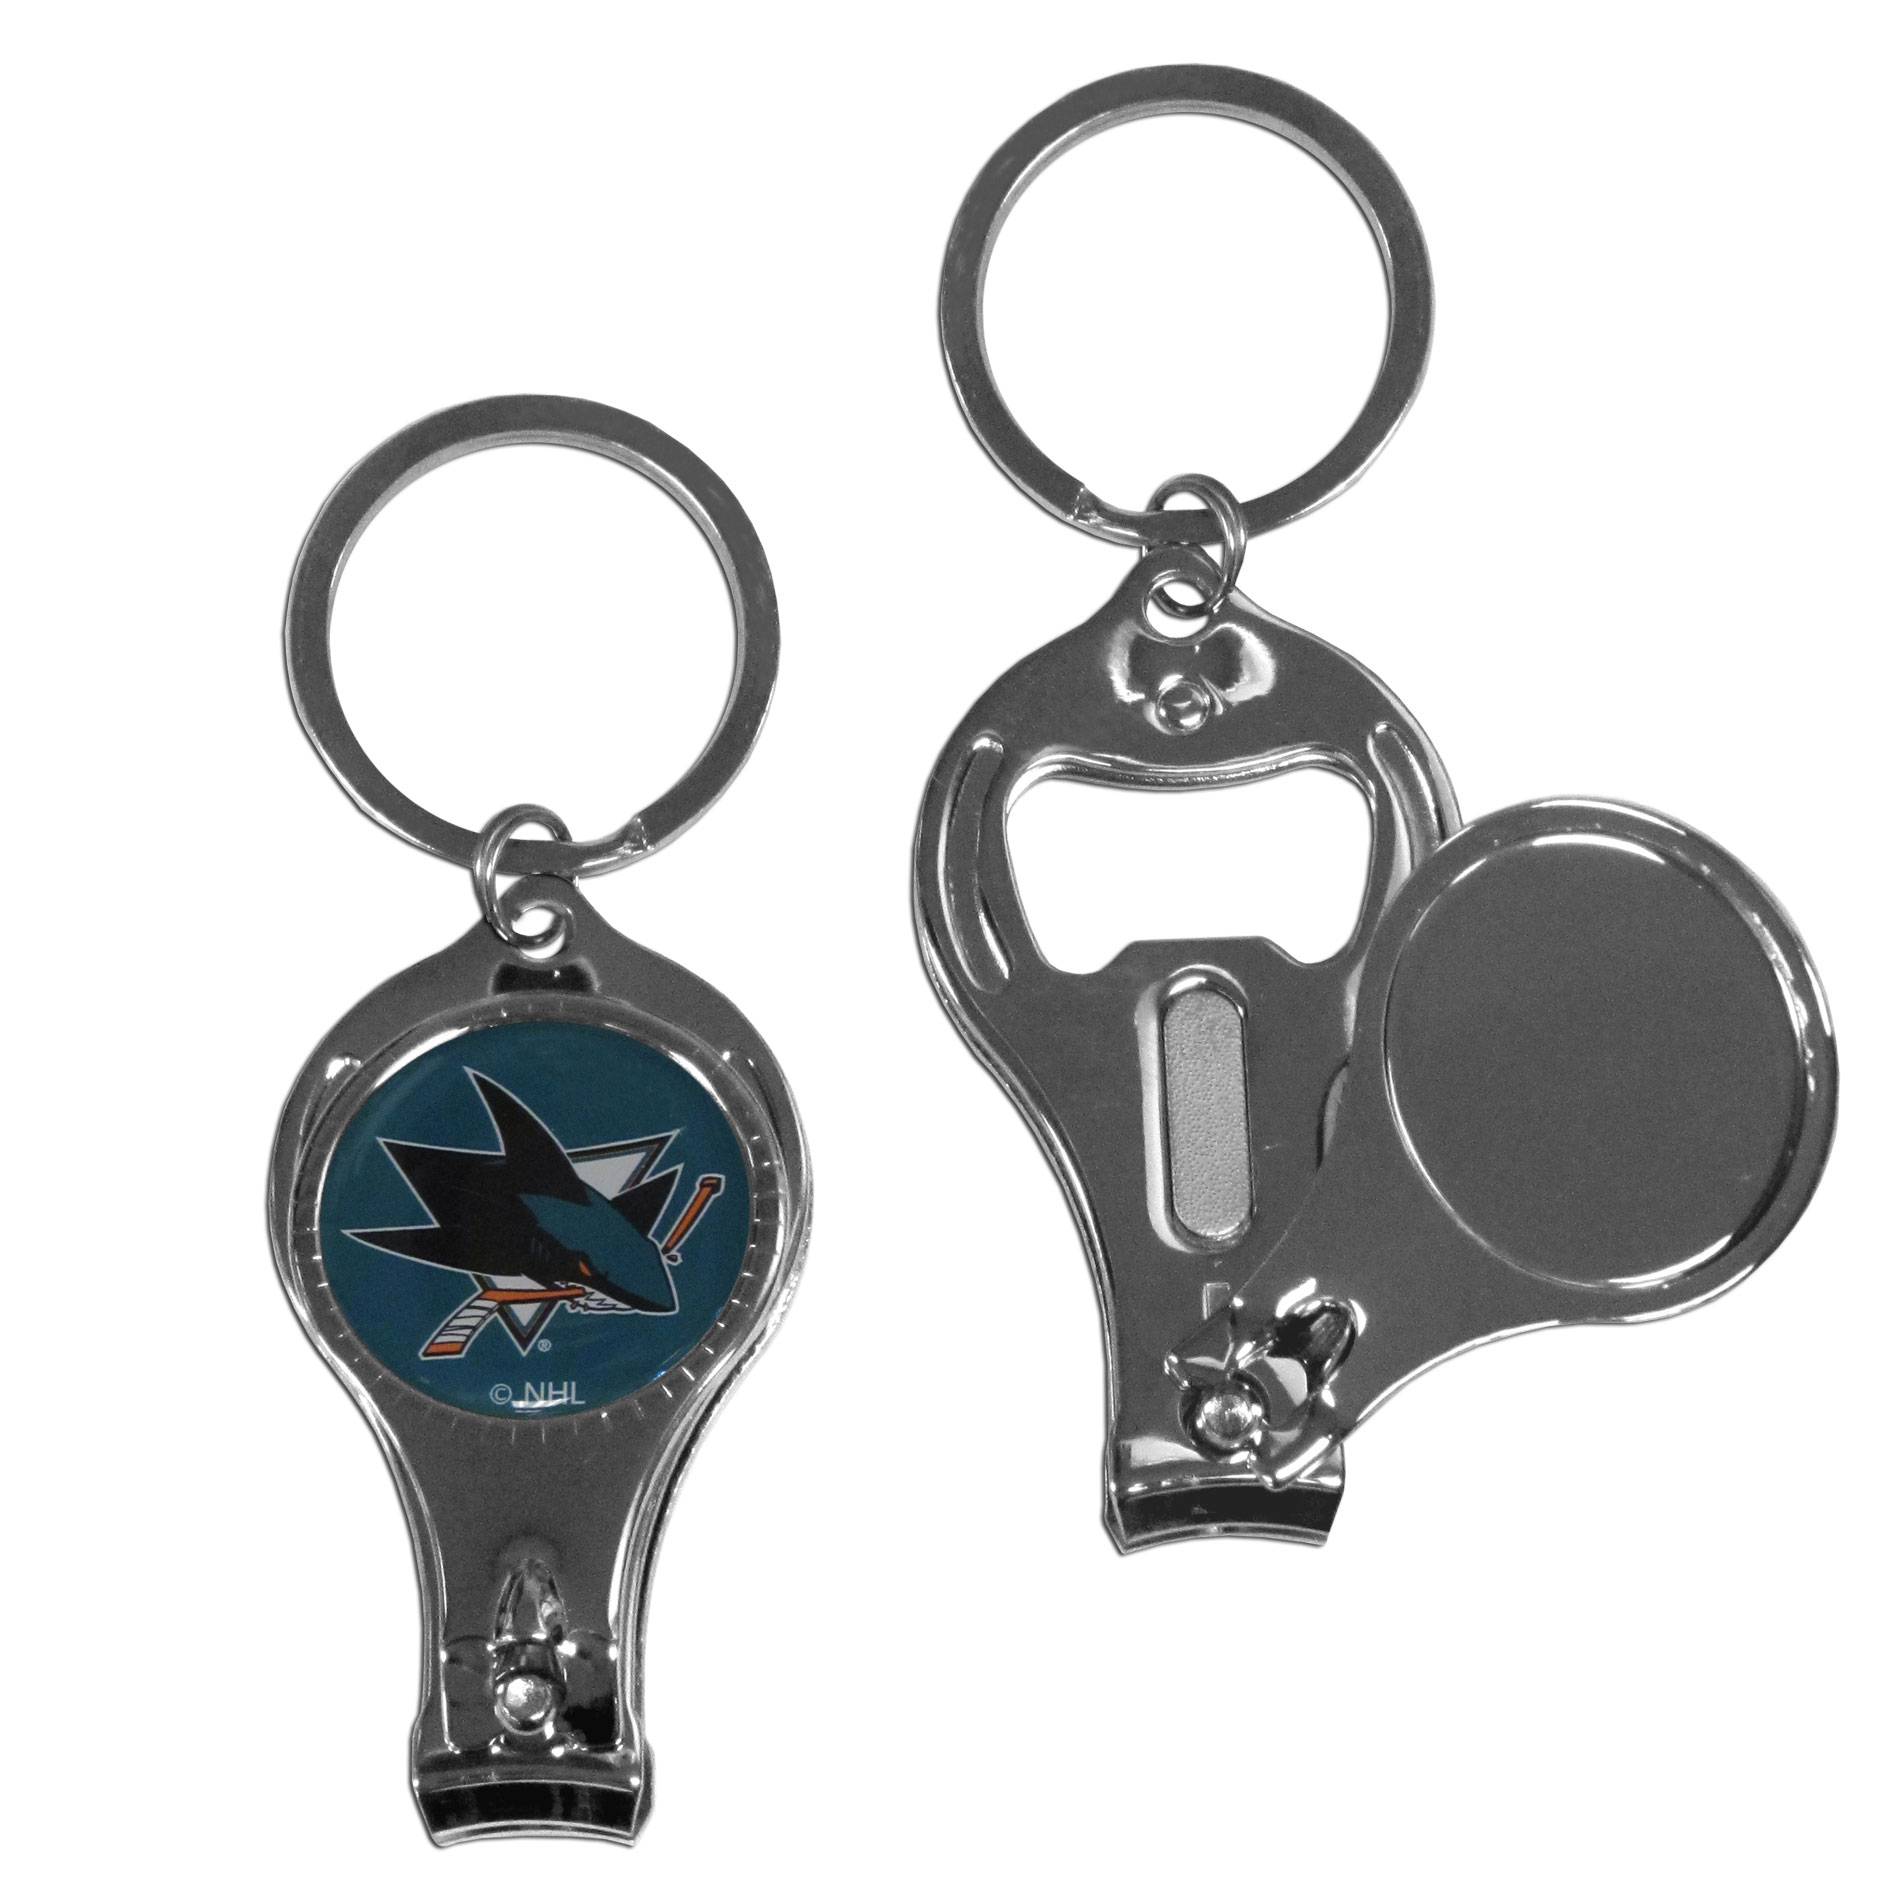 San Jose Sharks Nail Care Key Chain - This unique NHL San Jose Sharks Nail Care Key Chain has 3 great functions! The San Jose Sharks Nail Care Key Chain opens to become a nail clipper, when open you can access the nail file pad plus the San Jose Sharks key chain also has a bottle opener. This versatile San Jose Sharks Nail Care Key Chain features a San Jose Sharks domed logo.